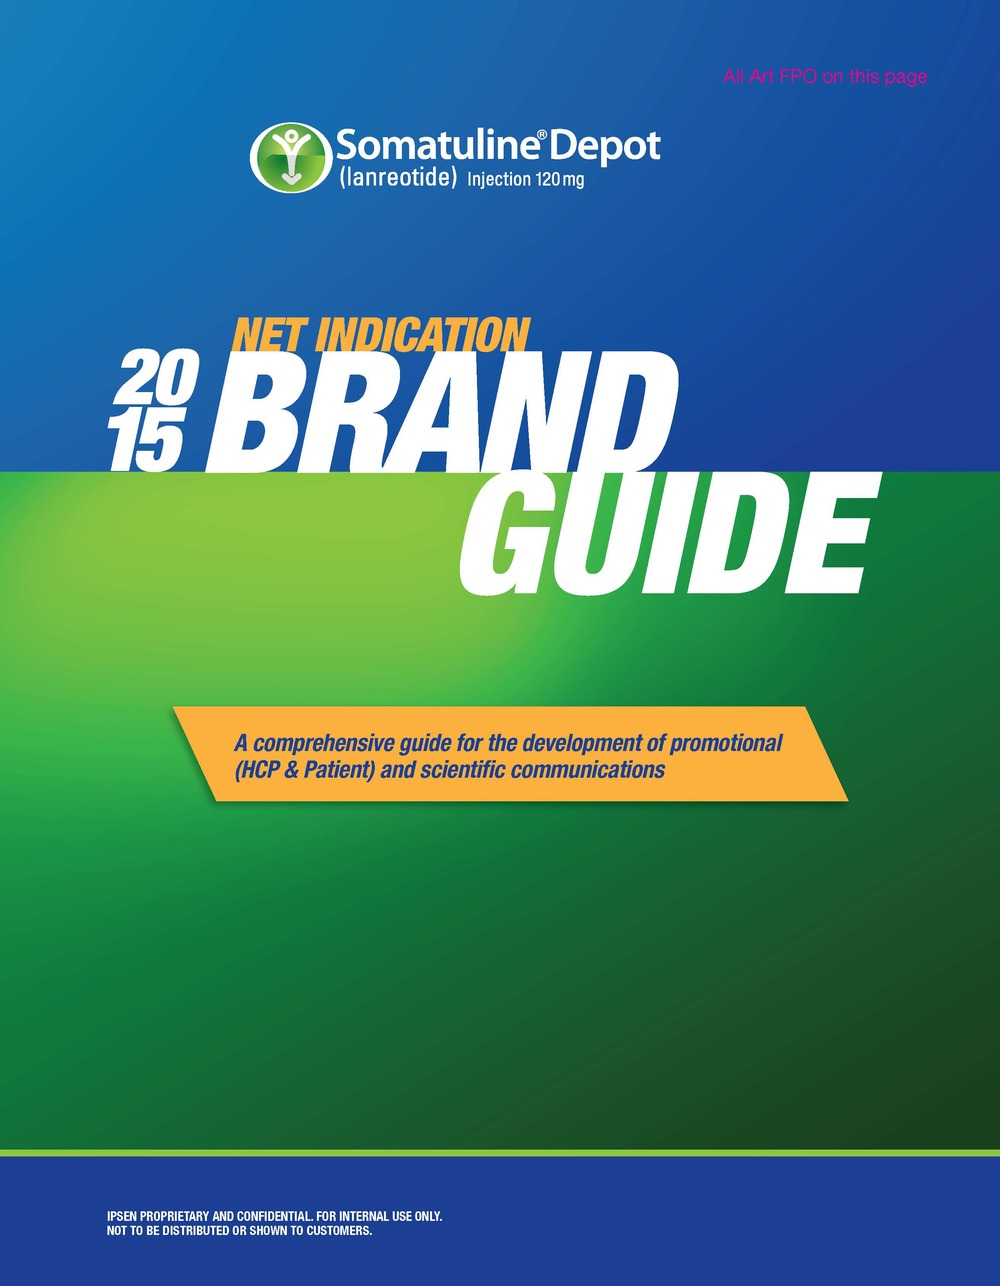 IPSO15133_Branding Guide_R41_Page_01.jpg